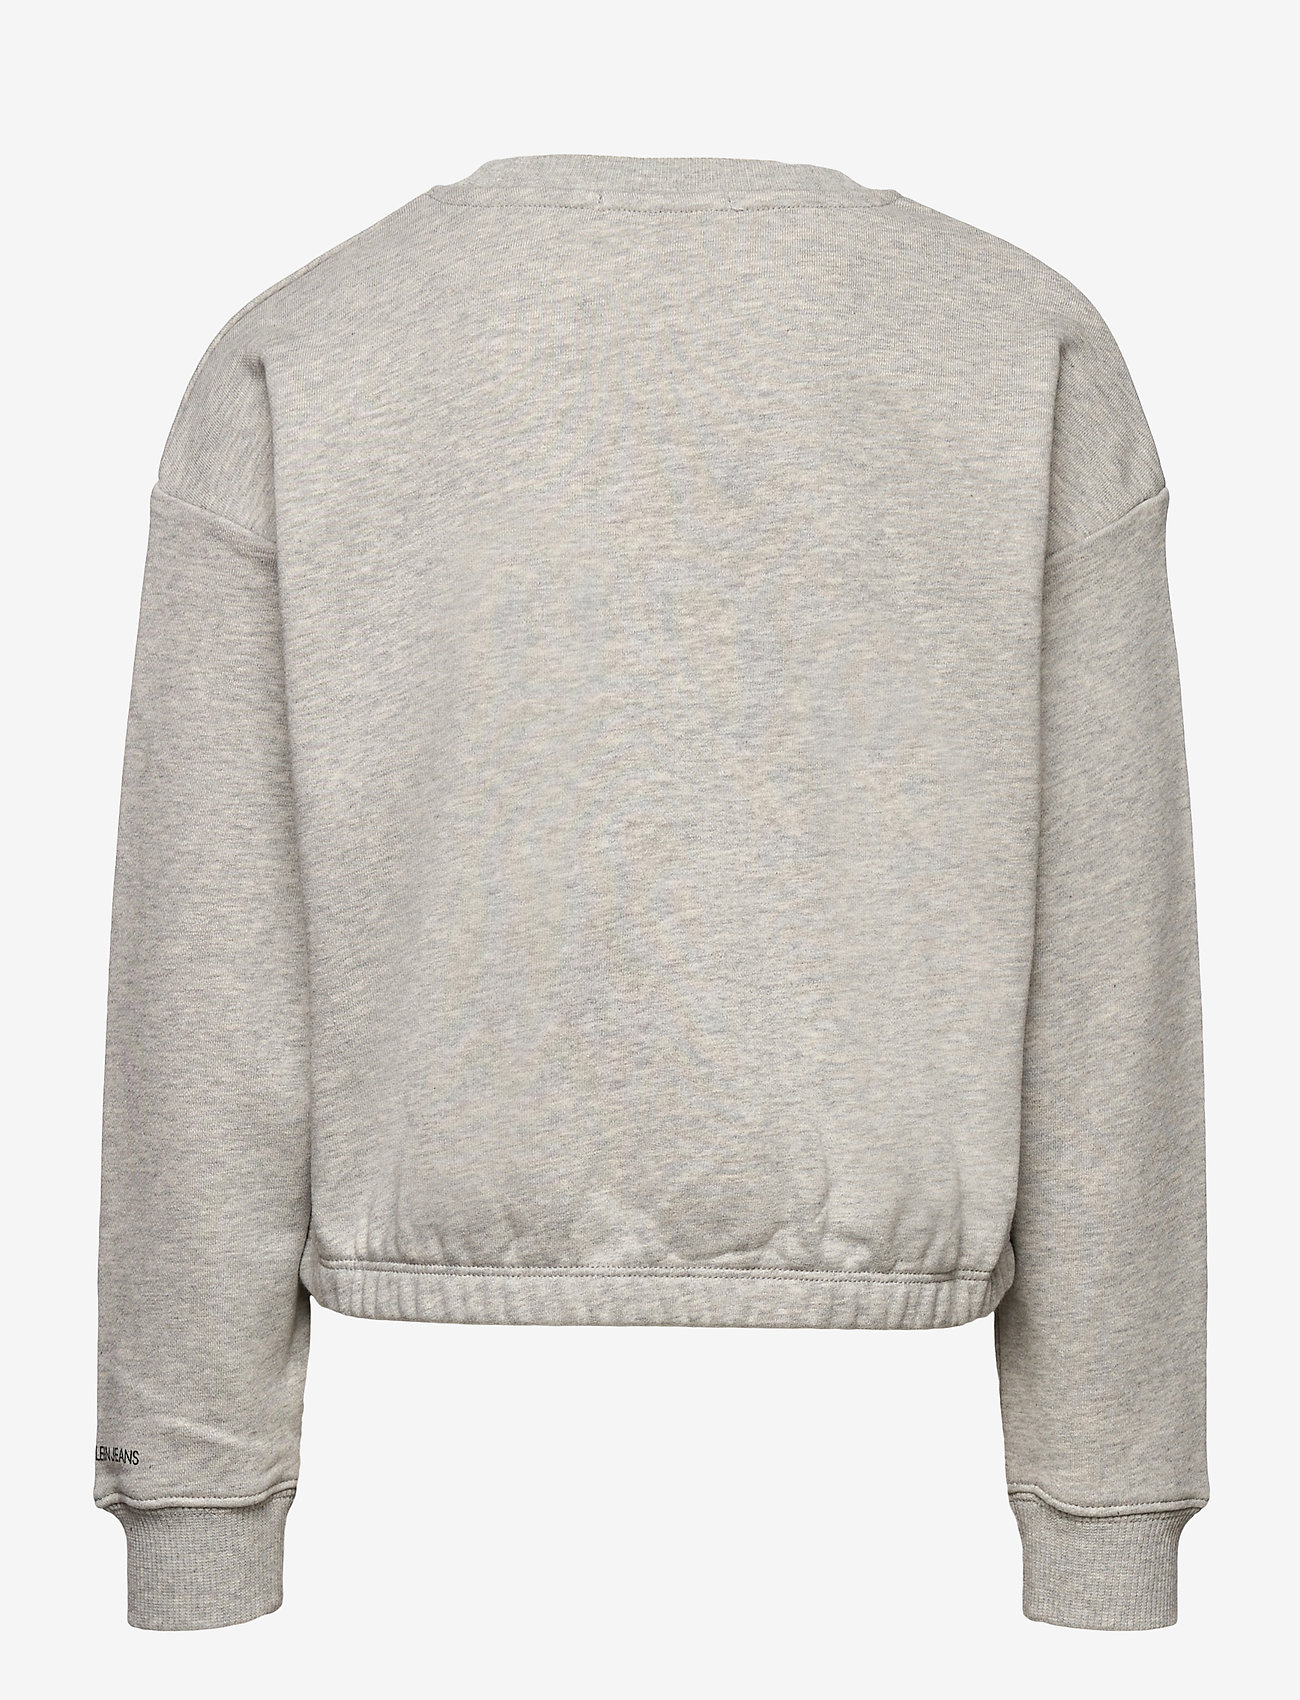 Calvin Klein - LOGO BOXY SWEATSHIRT - sweatshirts - light grey heather - 1